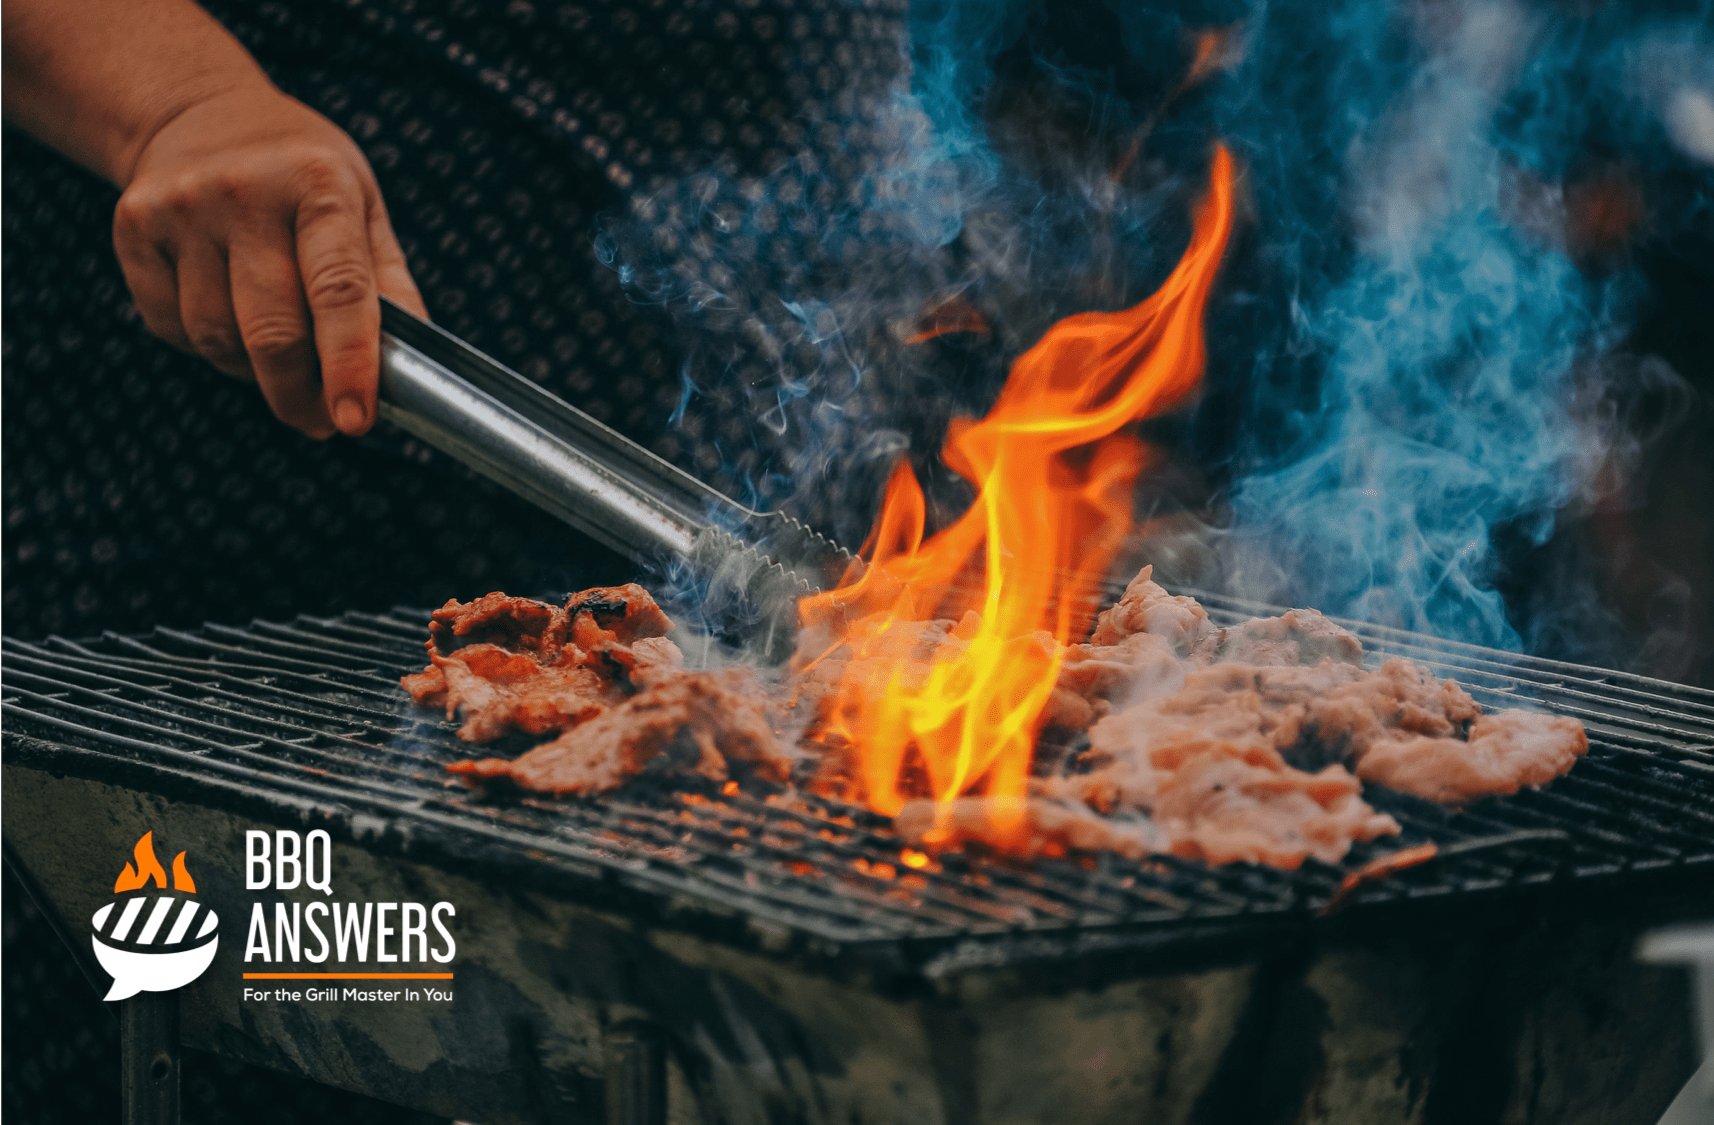 Reasons and remedies for BBQ Grill Rust | BBQanswers